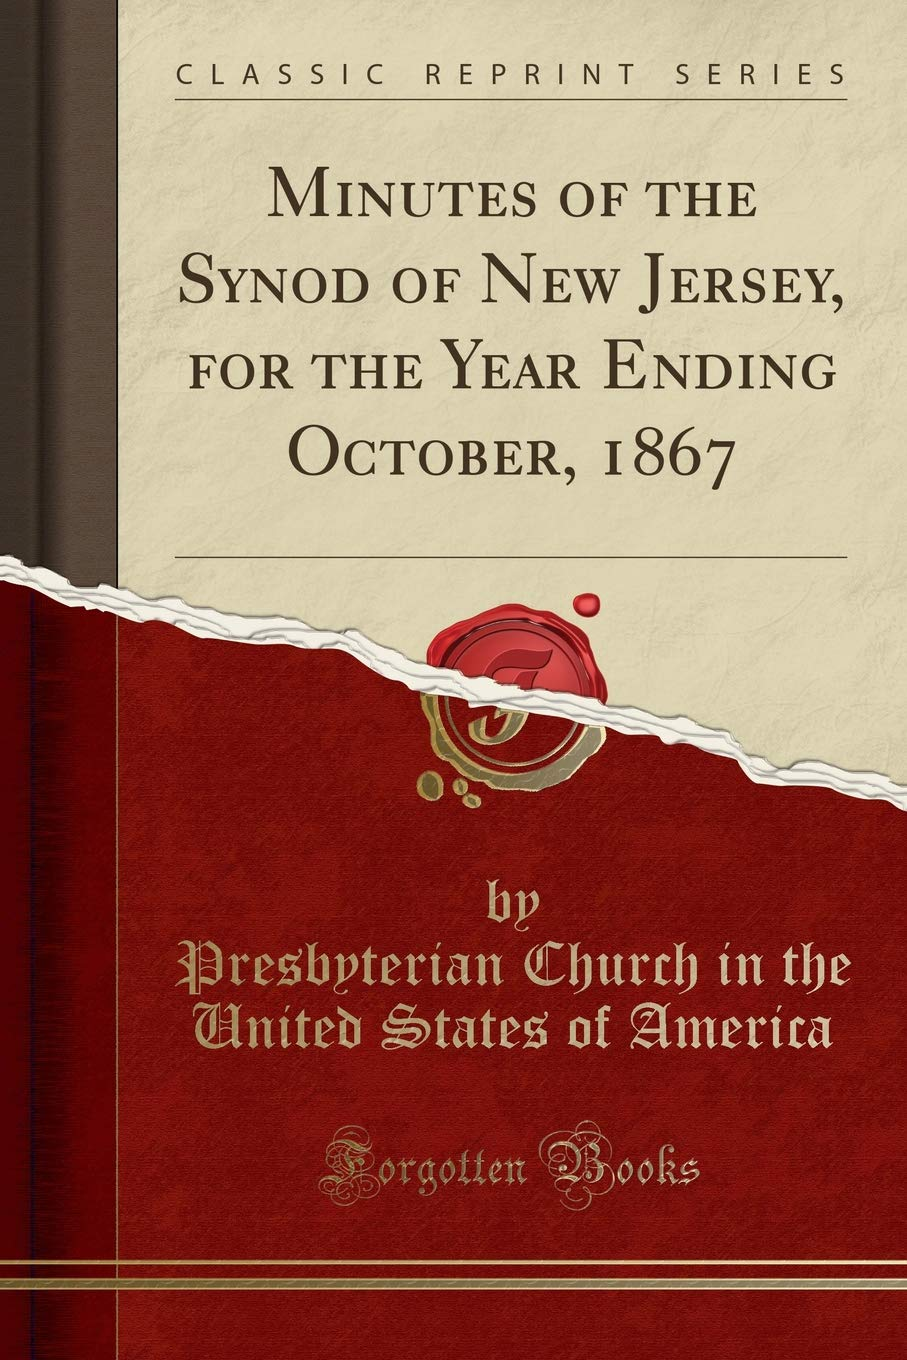 Minutes of the Synod of New Jersey, for the Year Ending October, 1867 (Classic Reprint) pdf